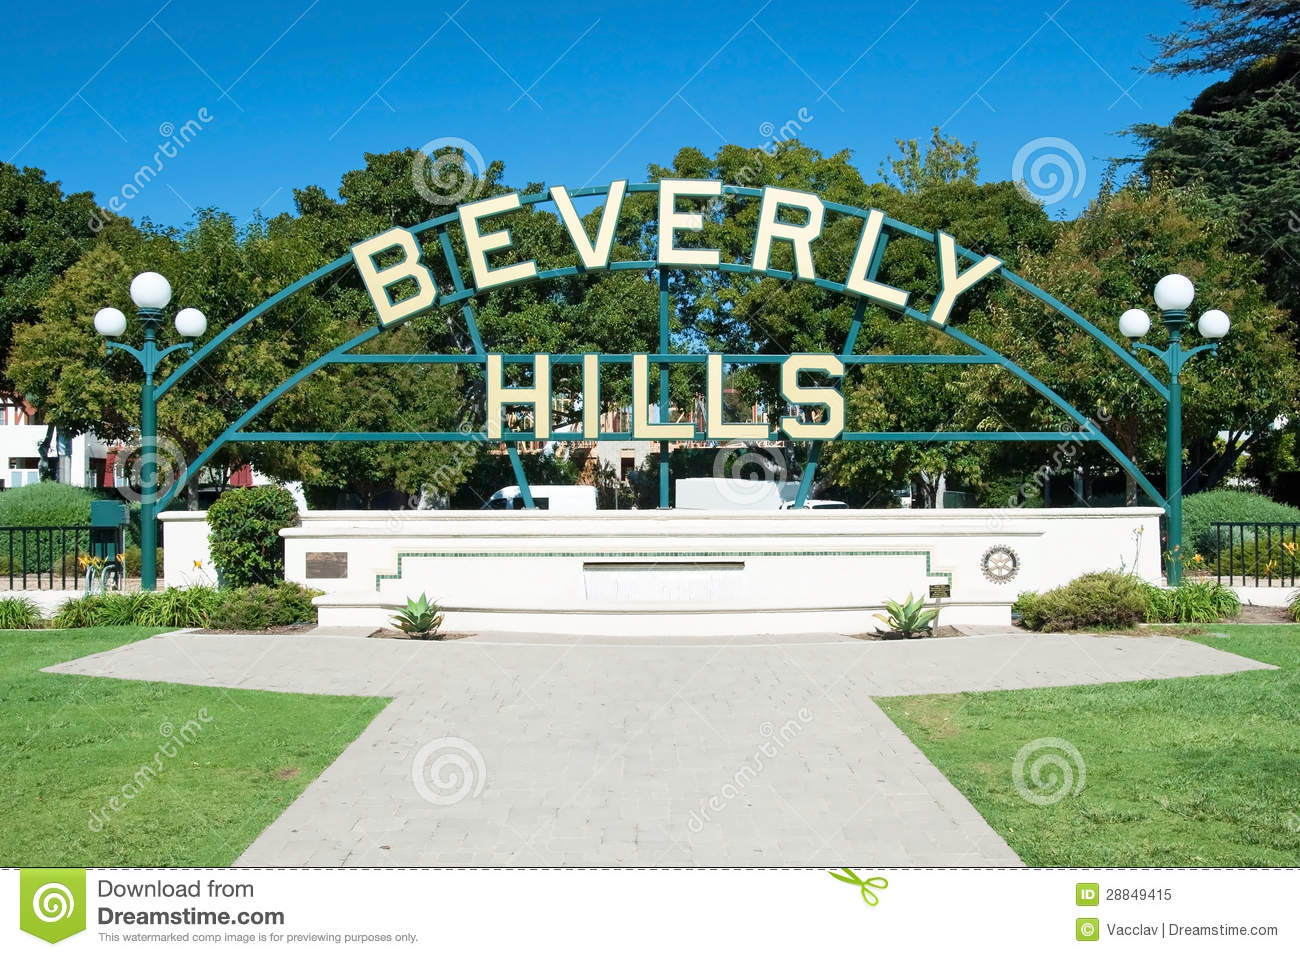 Beverly Hills assina dentro o parque de Los Angeles